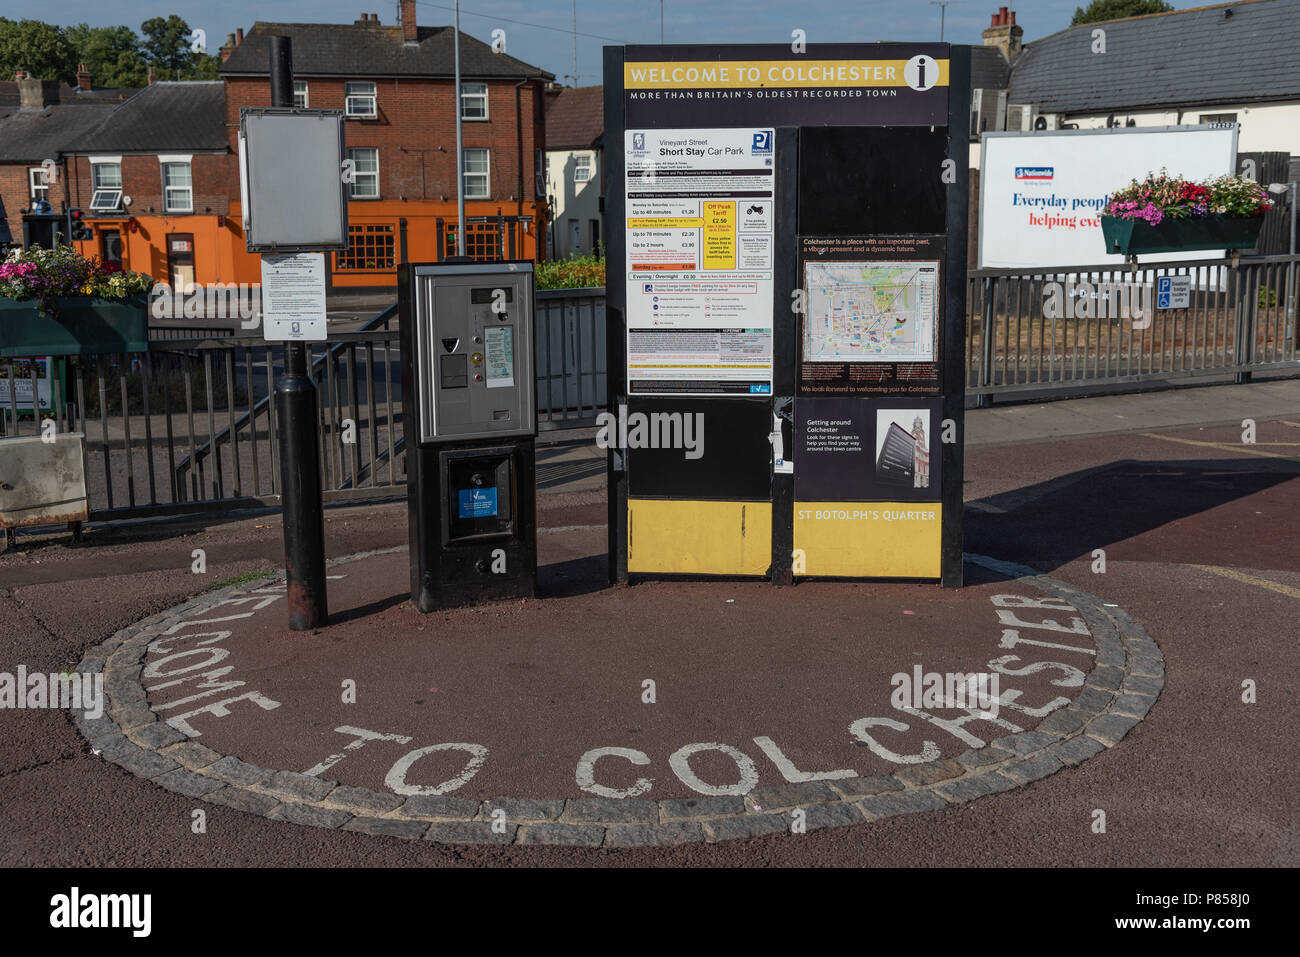 Welcome to Colchester! Vinyard Street Short Stay Car Park list of daily charges and ticket dispenser in early morning sun light. - Stock Image